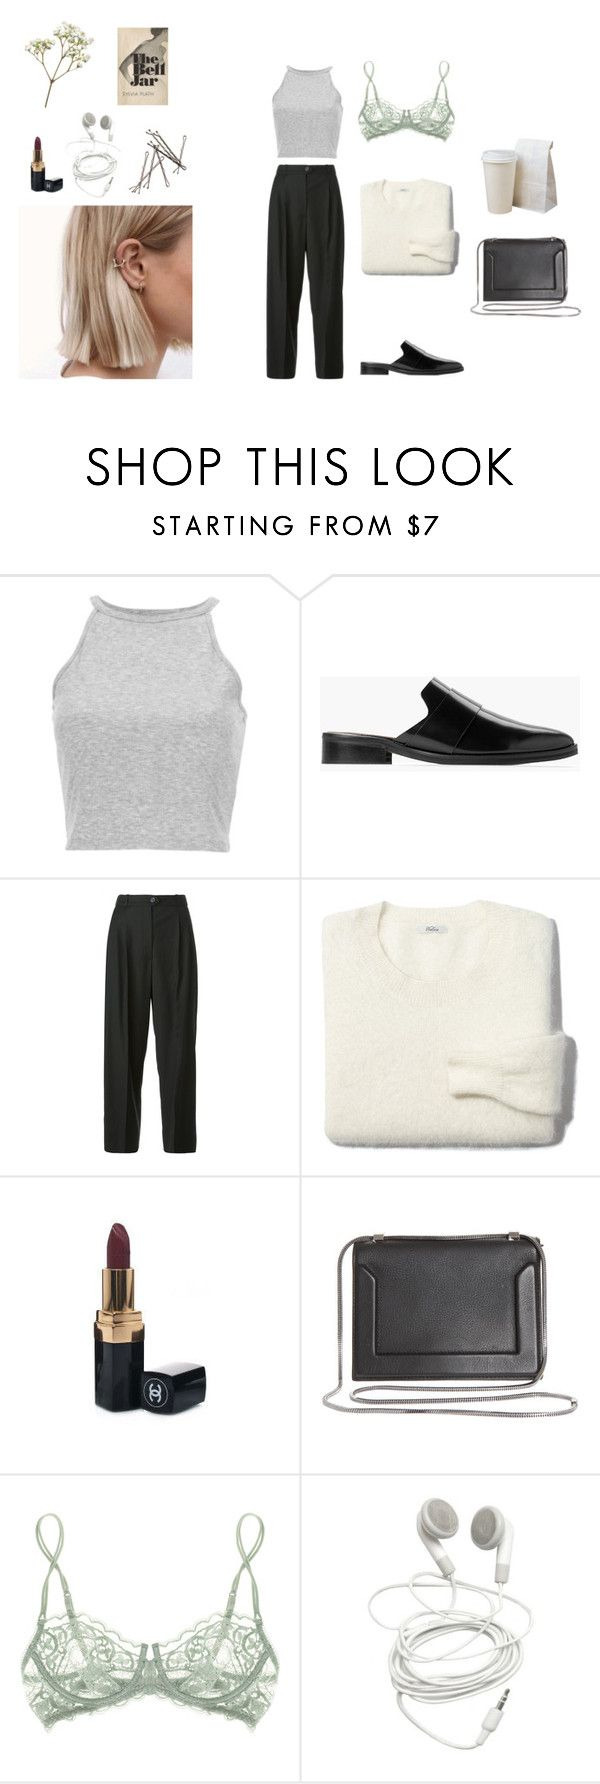 """noora amalie sætre"" by flowersinponds ❤ liked on Polyvore featuring MANGO, Chanel, Madewell, 3.1 Phillip Lim, La Perla and skam"